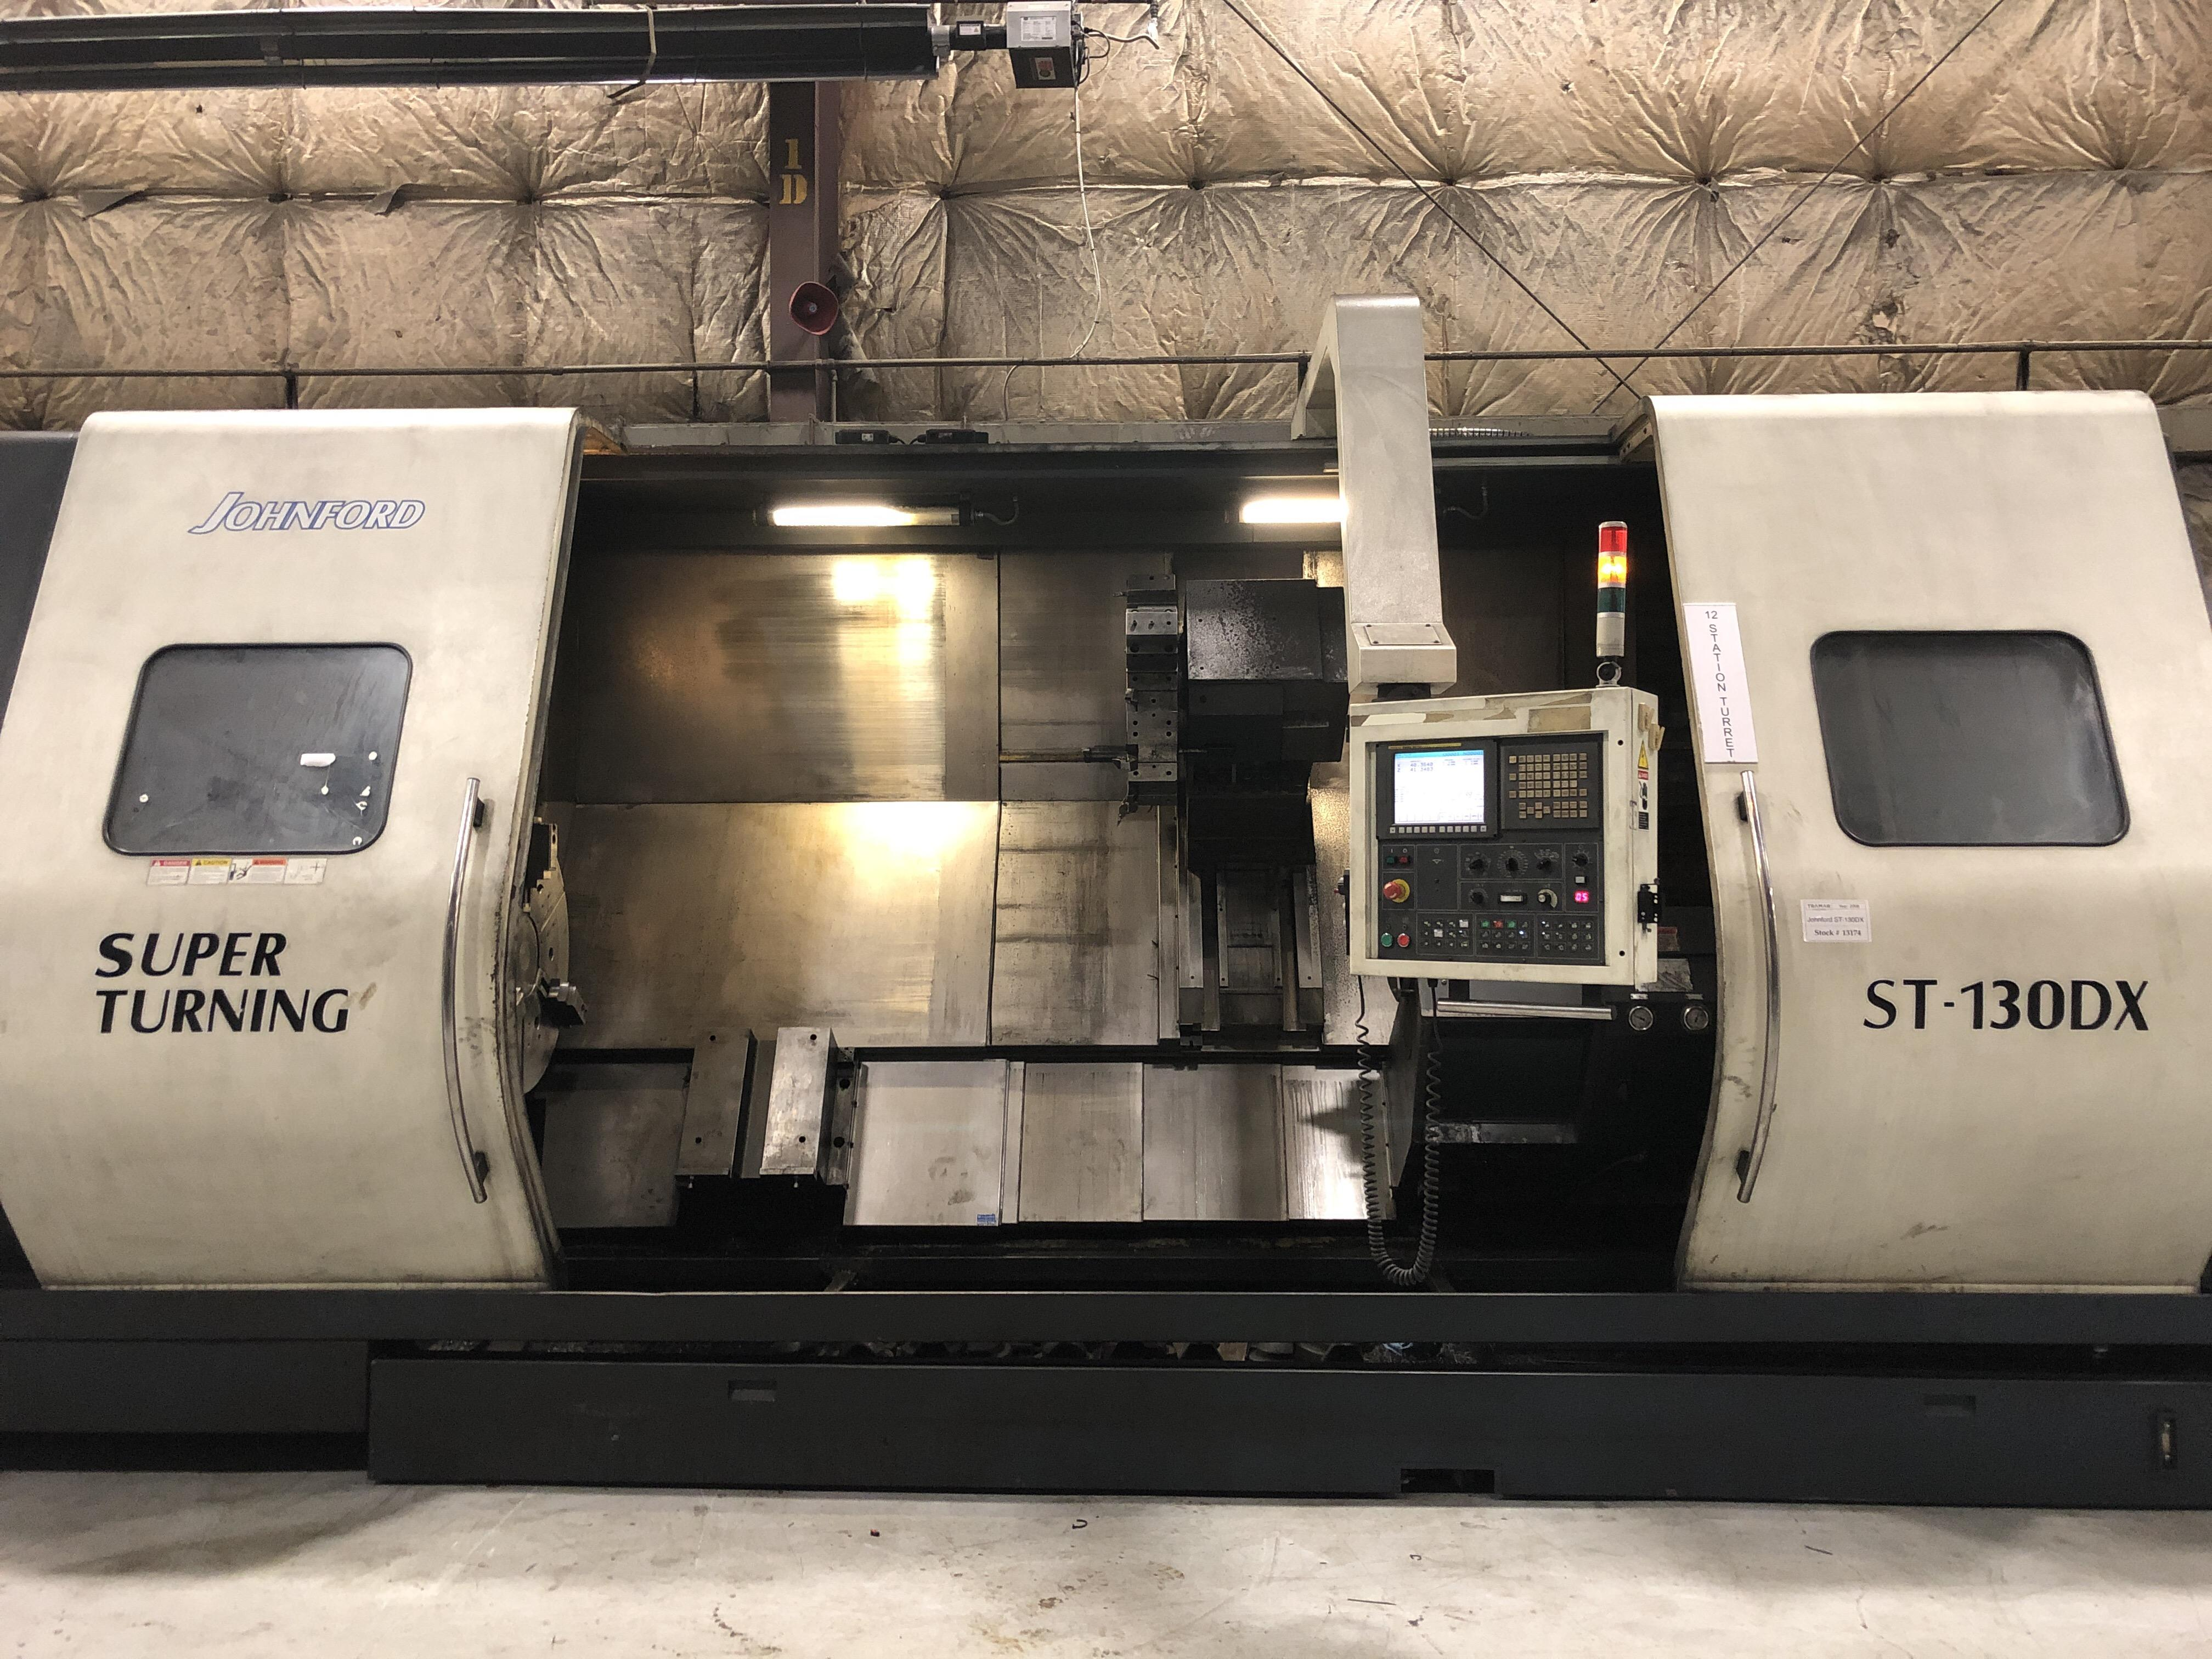 2008 JOHNFORD ST-130DX - CNC Horizontal Lathe